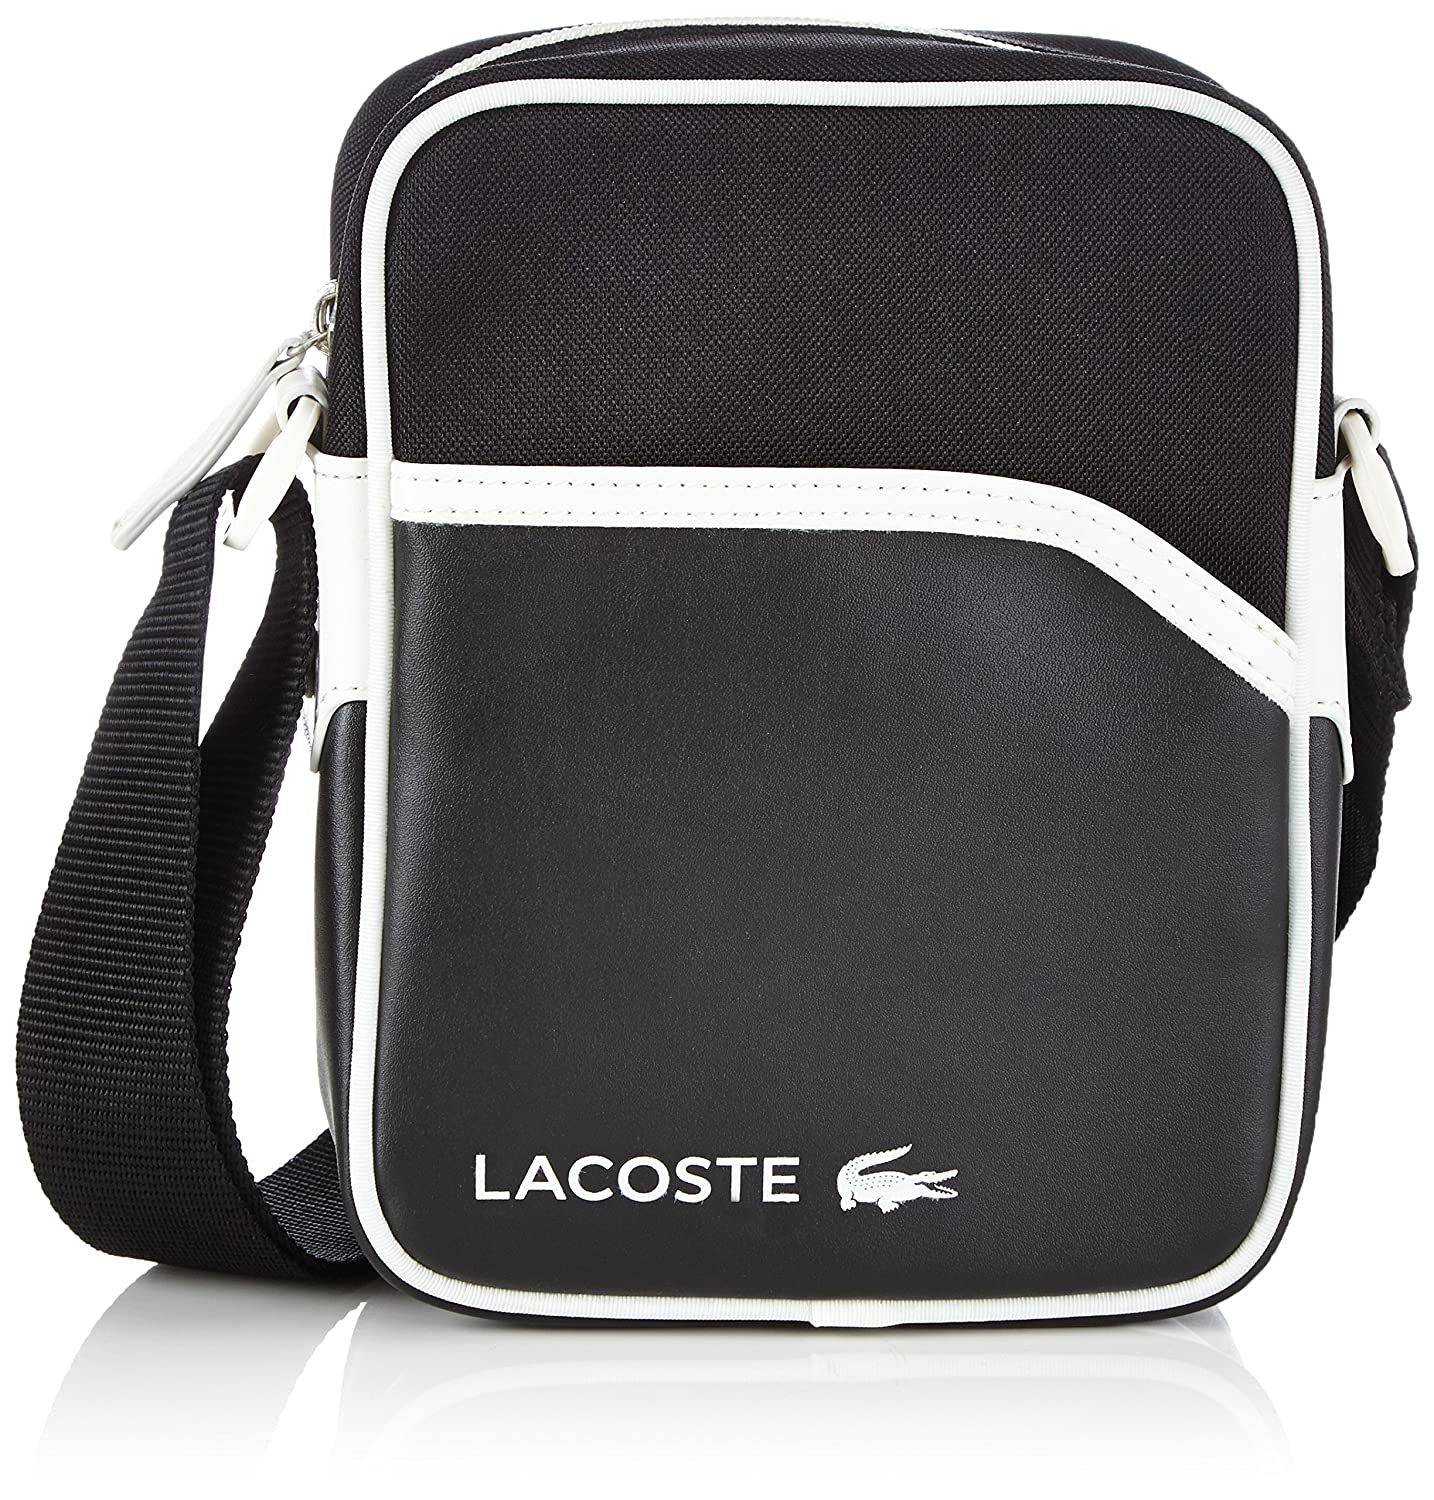 Lacoste Messenger Shoulder Bag 95